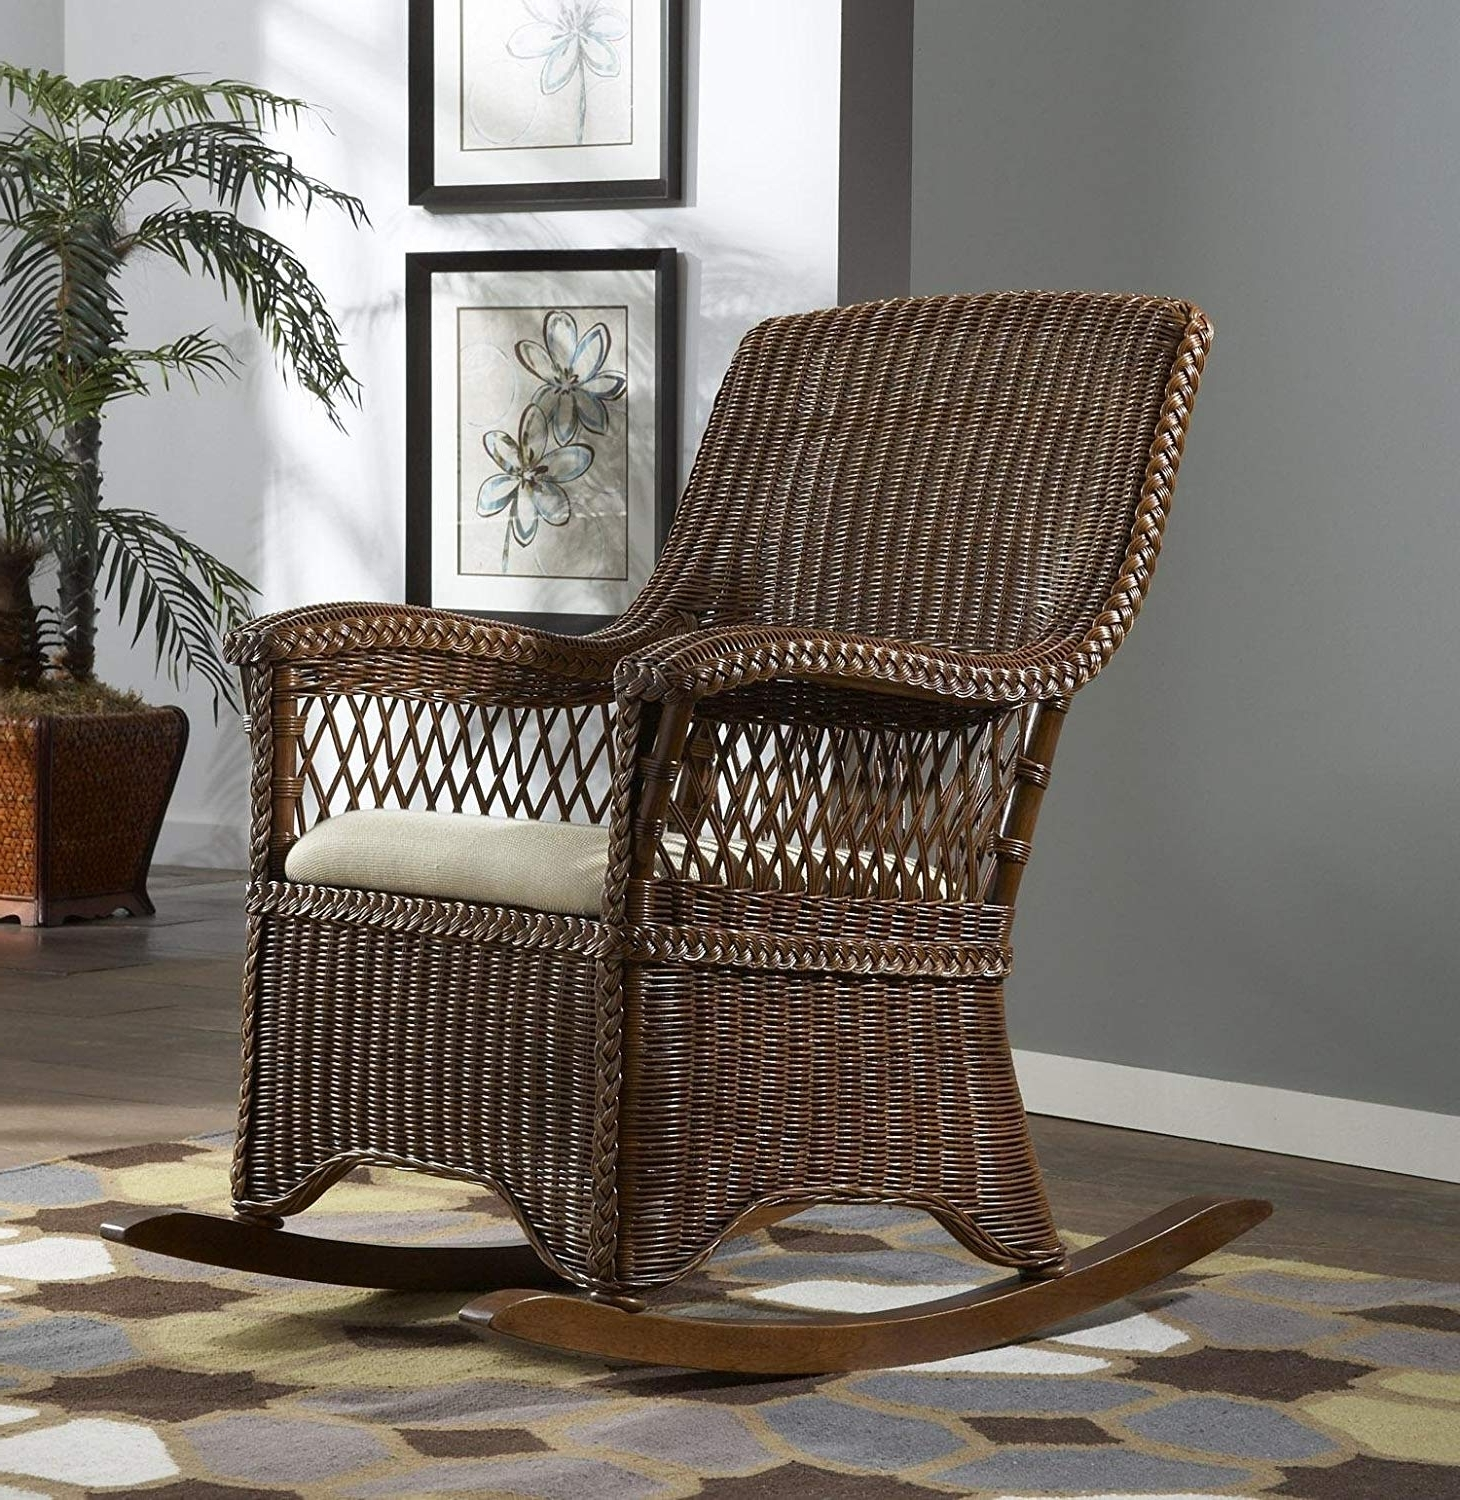 Recent Indoor Wicker Rocking Chair – Torino2017 Regarding Indoor Wicker Rocking Chairs (View 14 of 15)